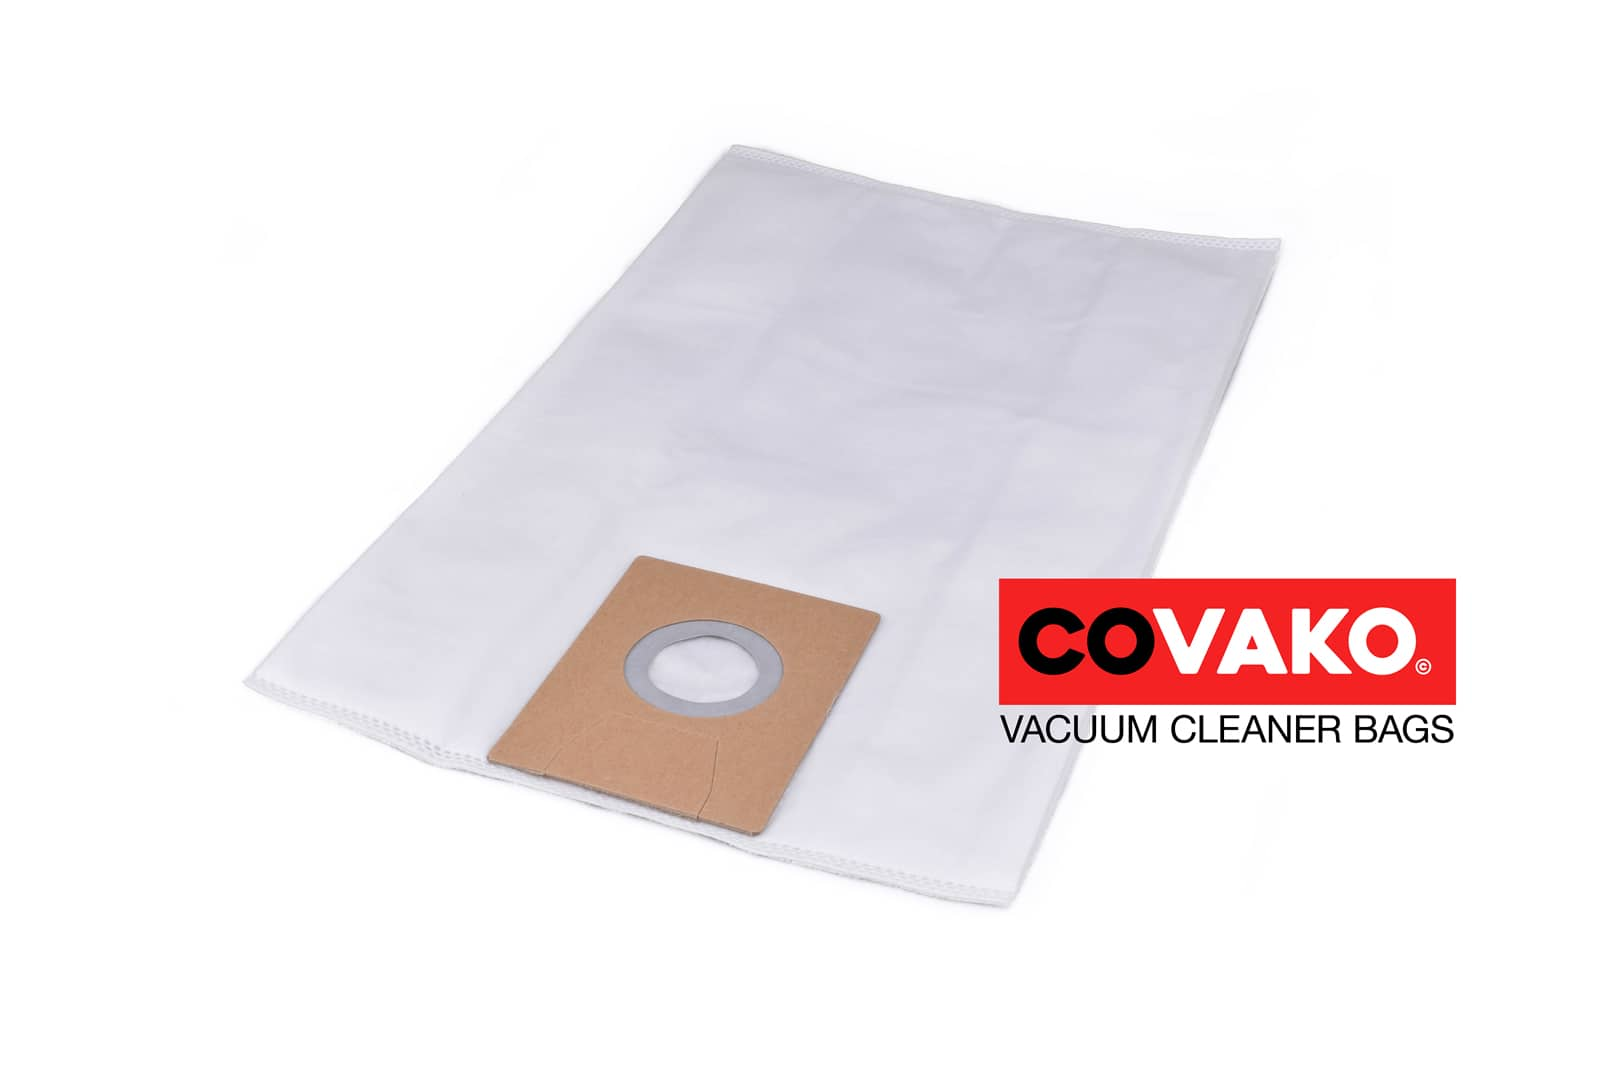 Ivac K103200941 / Synthesis - Ivac vacuum cleaner bags